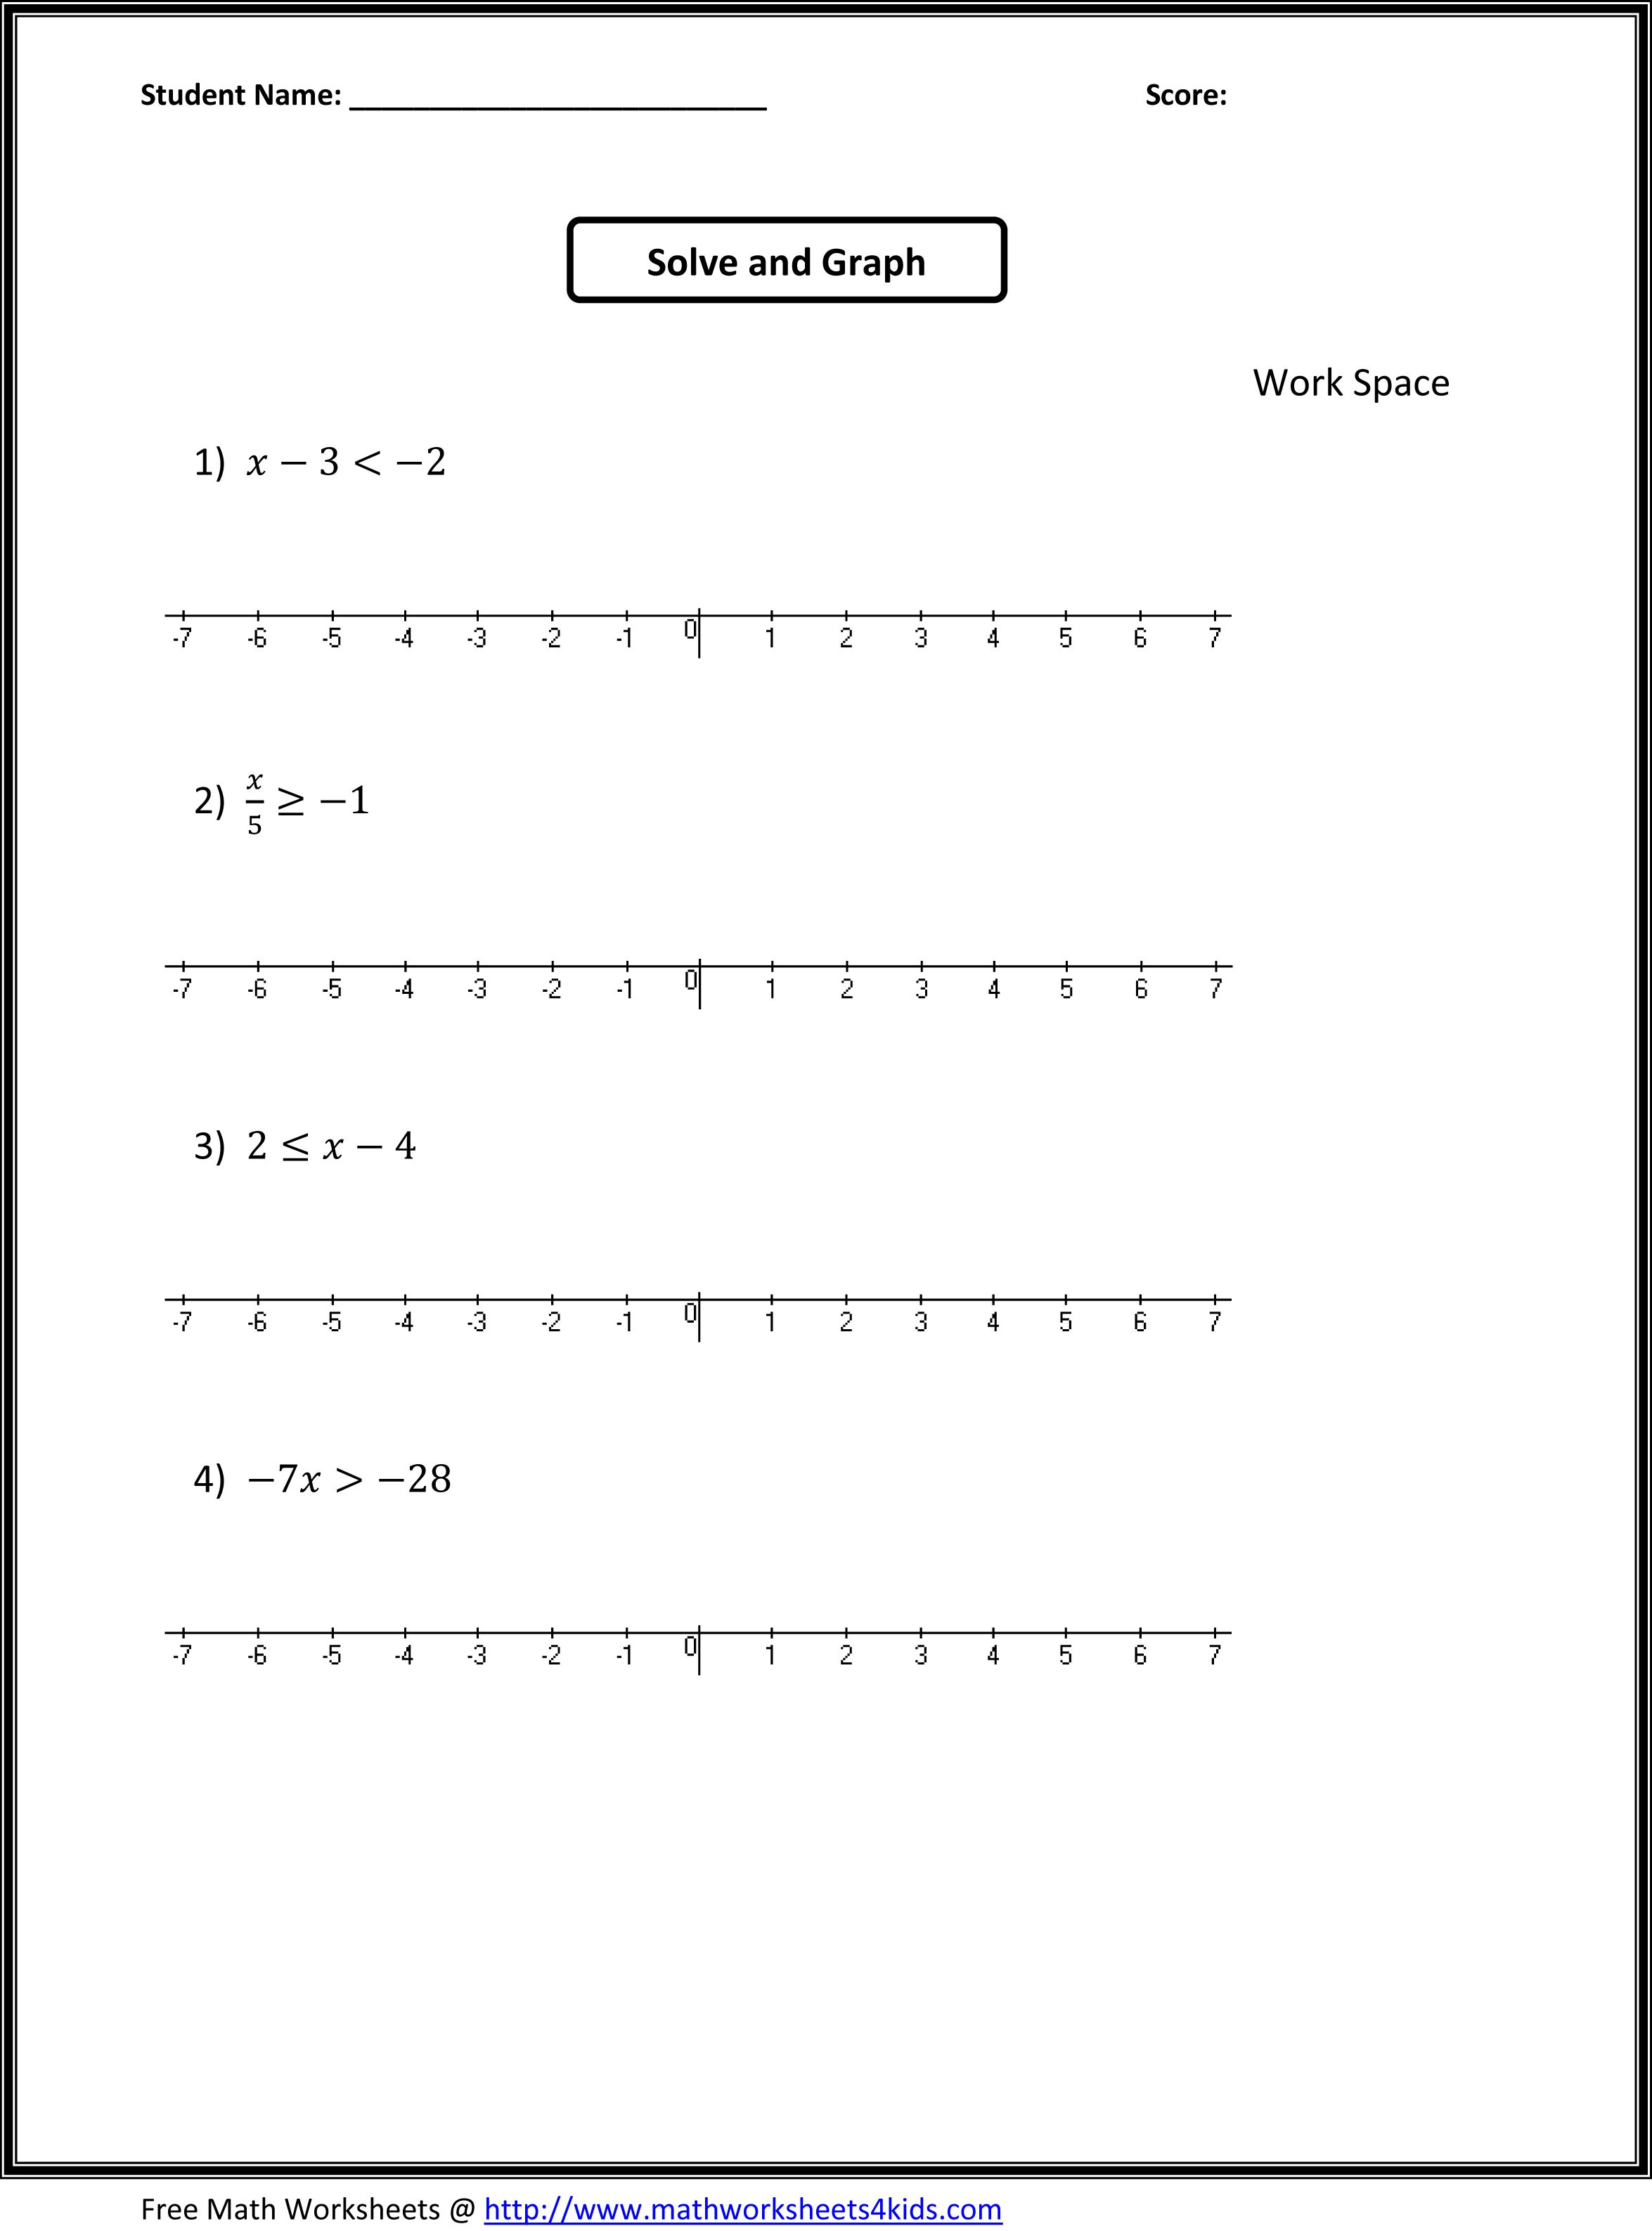 Printables 7th Grade Math Worksheets Algebra 7th grade math worksheets value absolute algebra worksheets